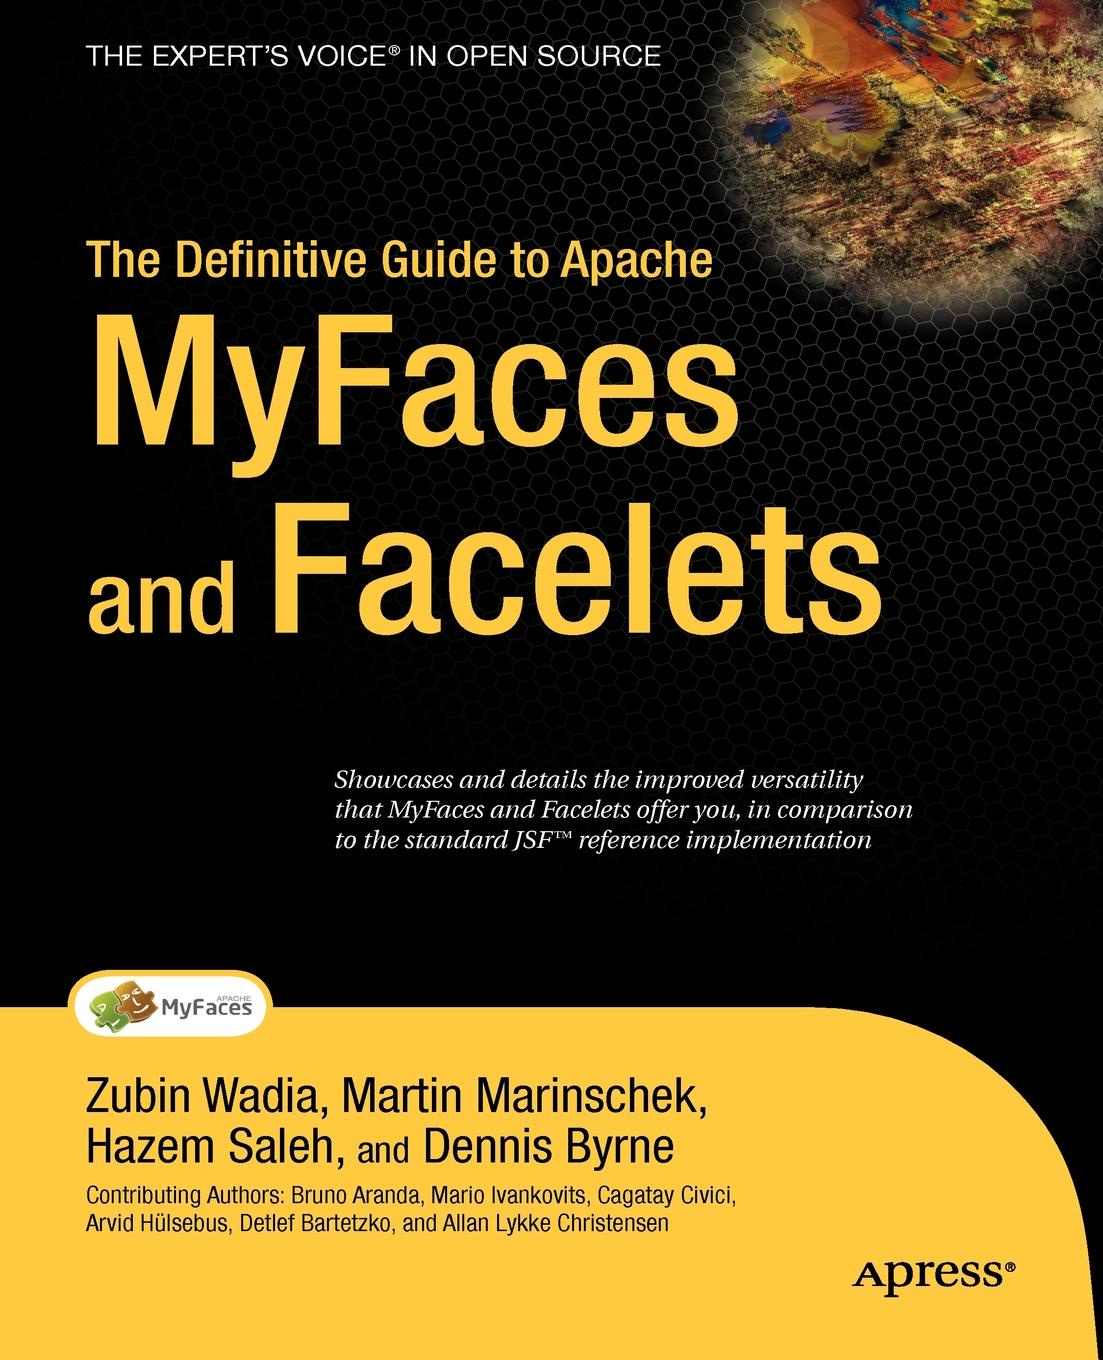 Zubin Wadia, Martin Marinschek, Hazem Saleh The Definitive Guide to Apache MyFaces and Facelets frederic brandt 10 minutes 10 years your definitive guide to a beautiful and youthful